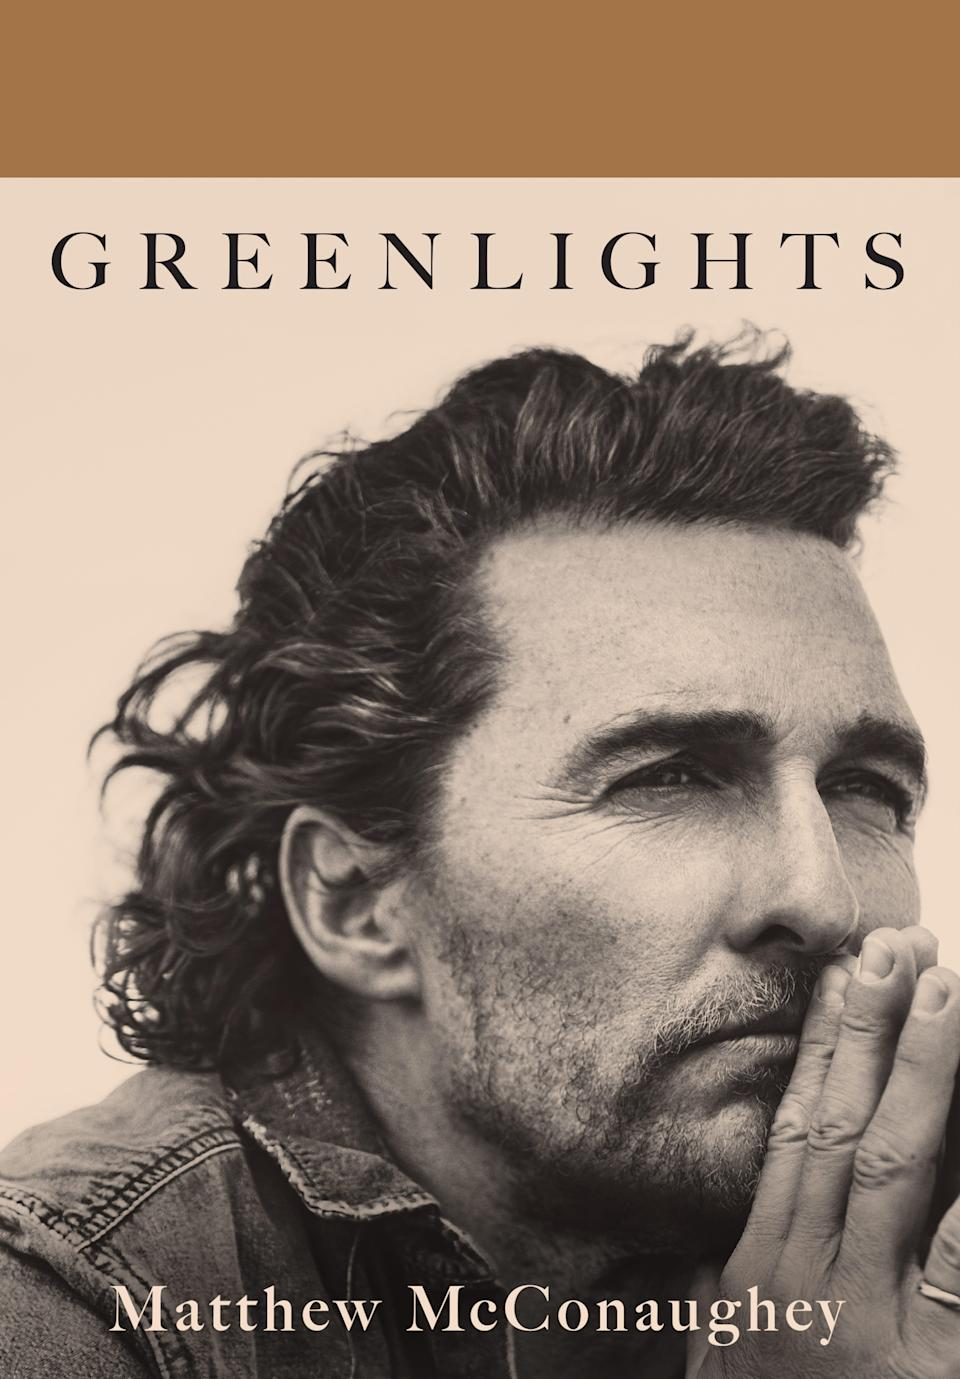 'Greenlights' by Matthew McConaughey